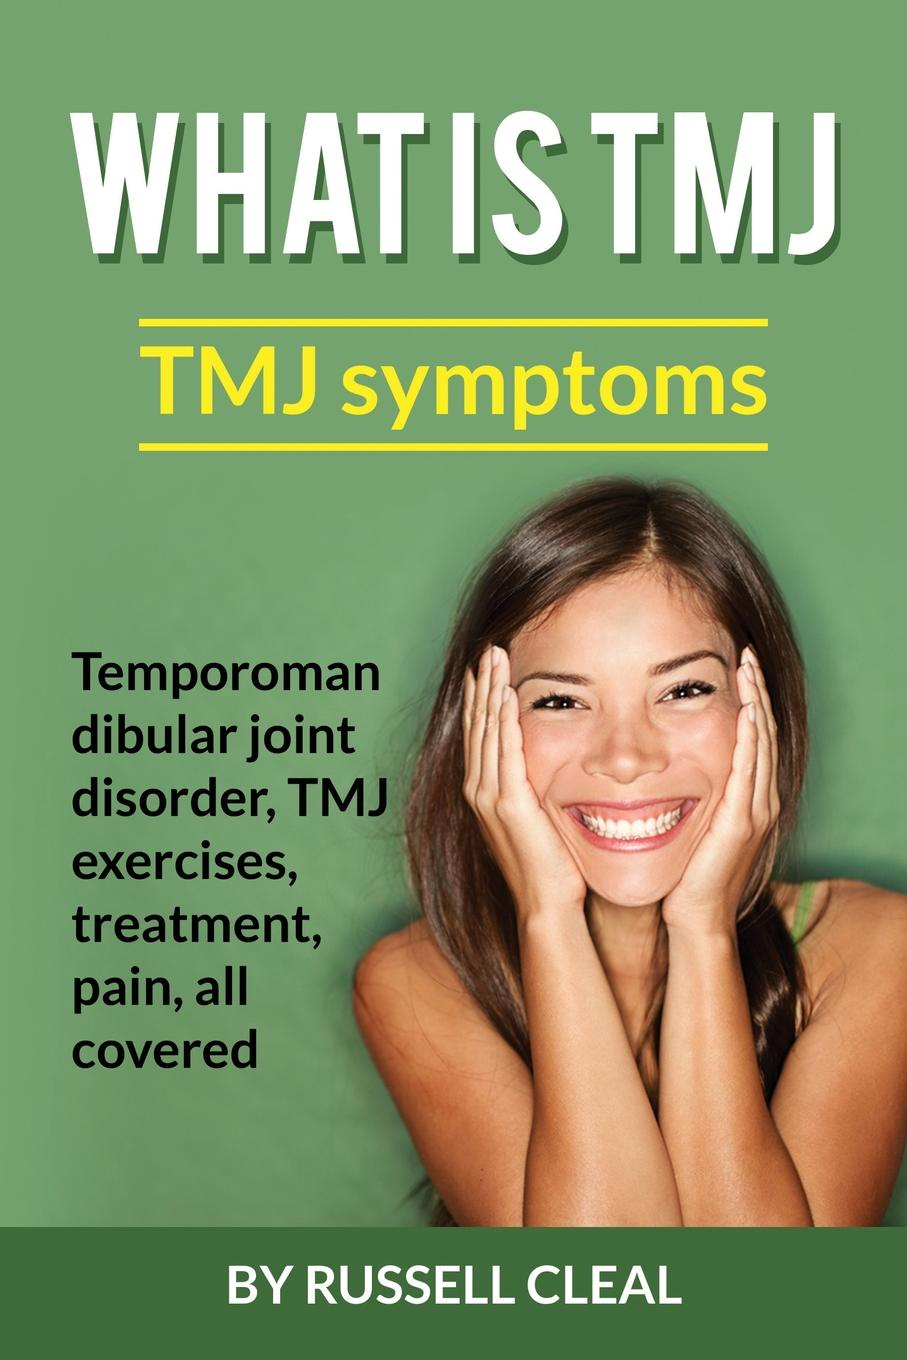 Russell Cleal What is TMJ. TMJ symptoms, Temporomandibular joint disorder, tmj exercises, treatment, pain, all covered frueh christopher clinician s guide to posttraumatic stress disorder